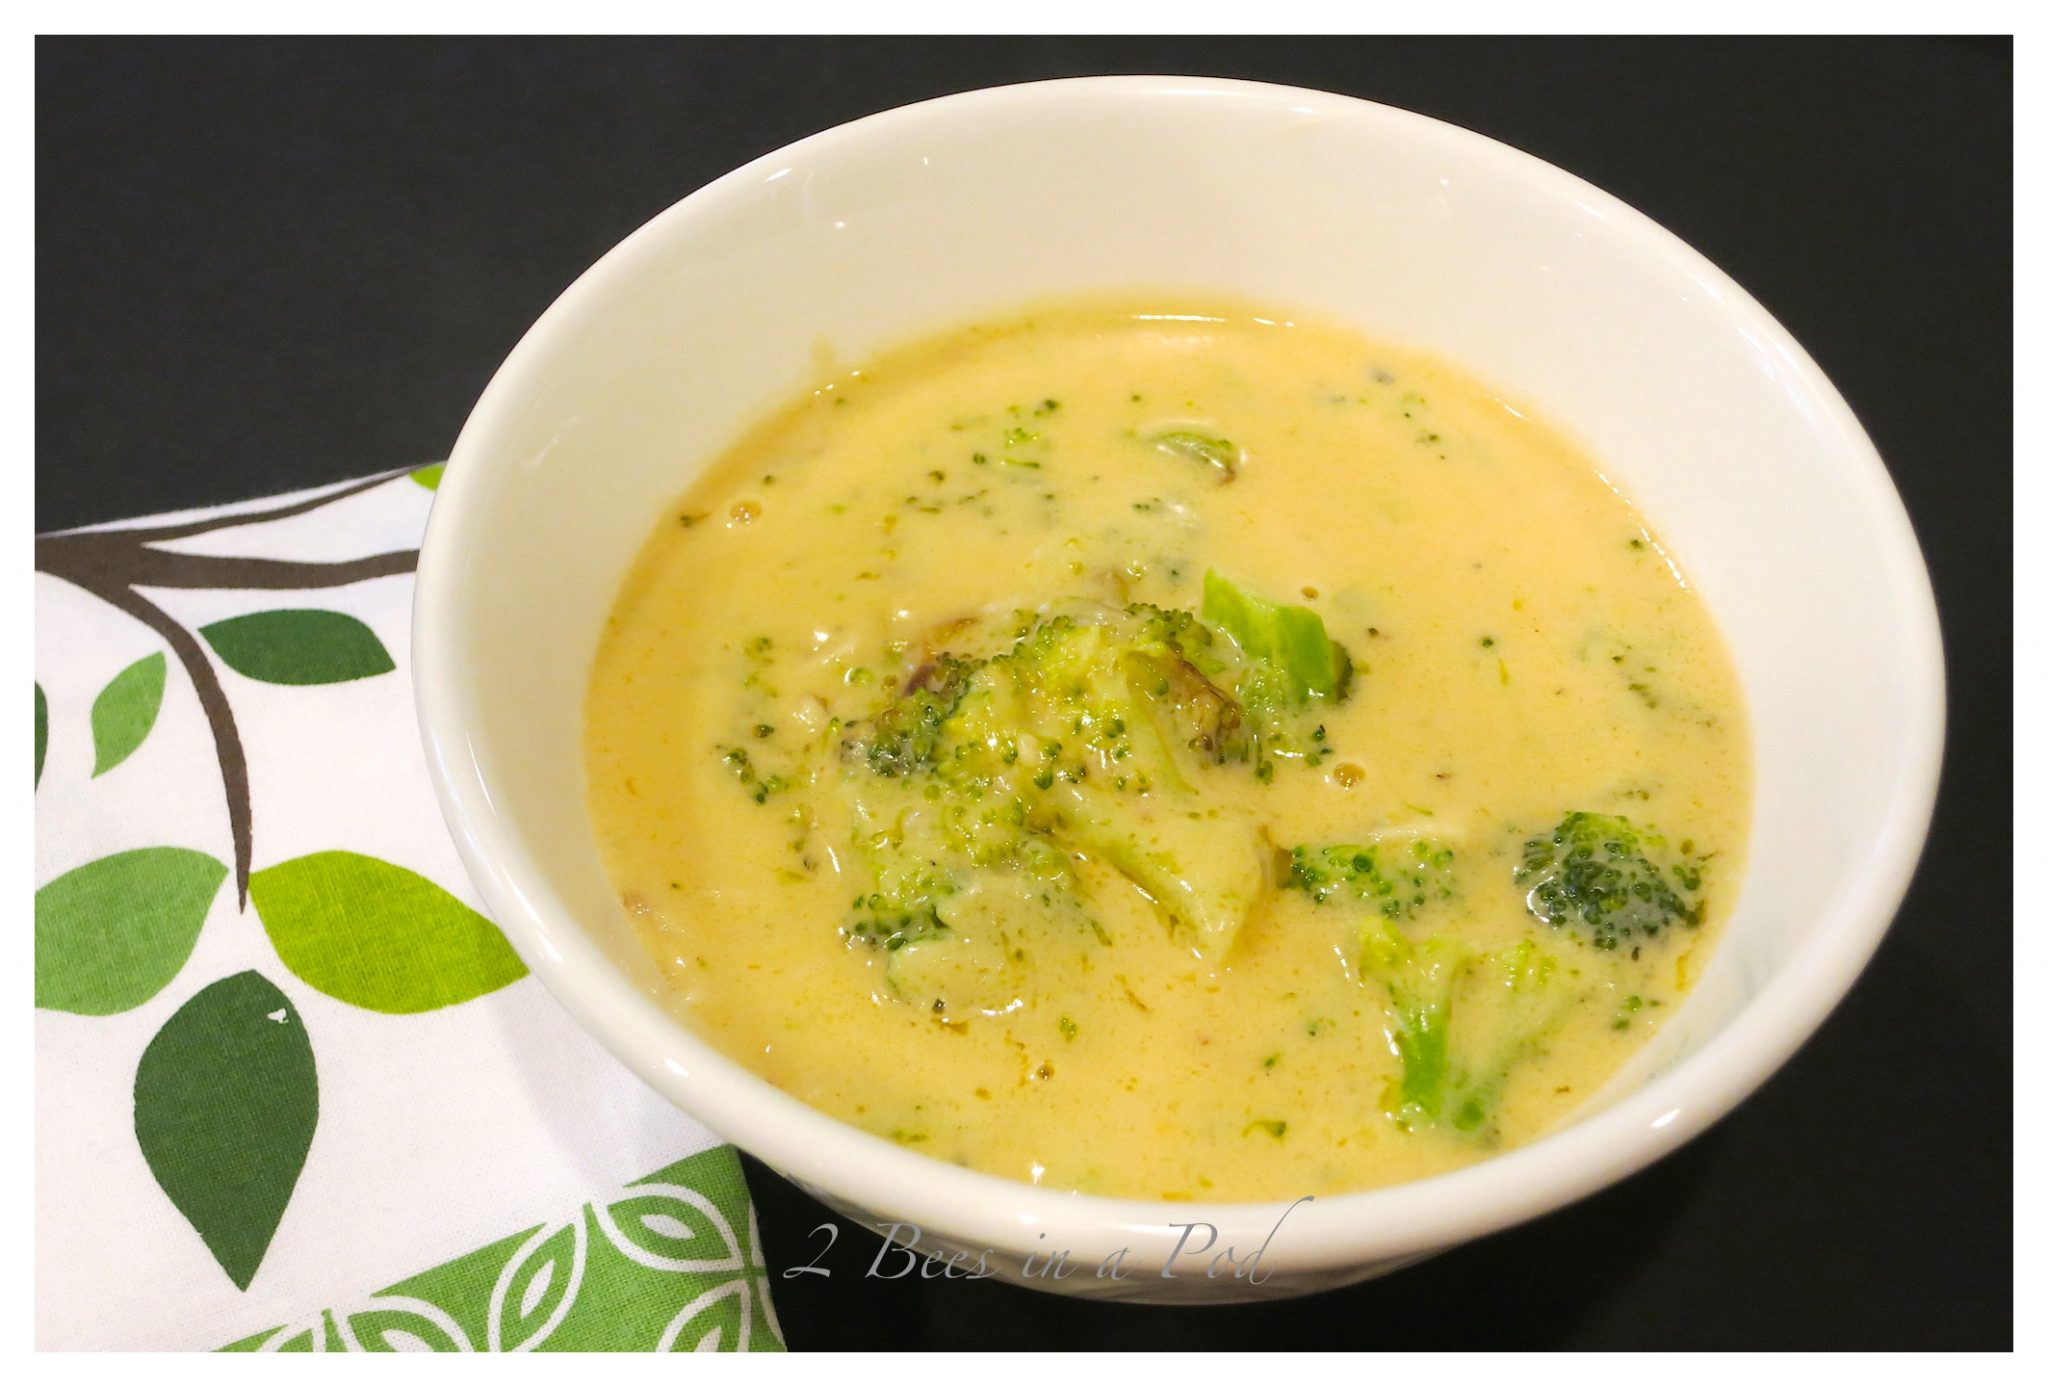 Creamy broccoli cheddar soup - truly easy to make and super tasty!